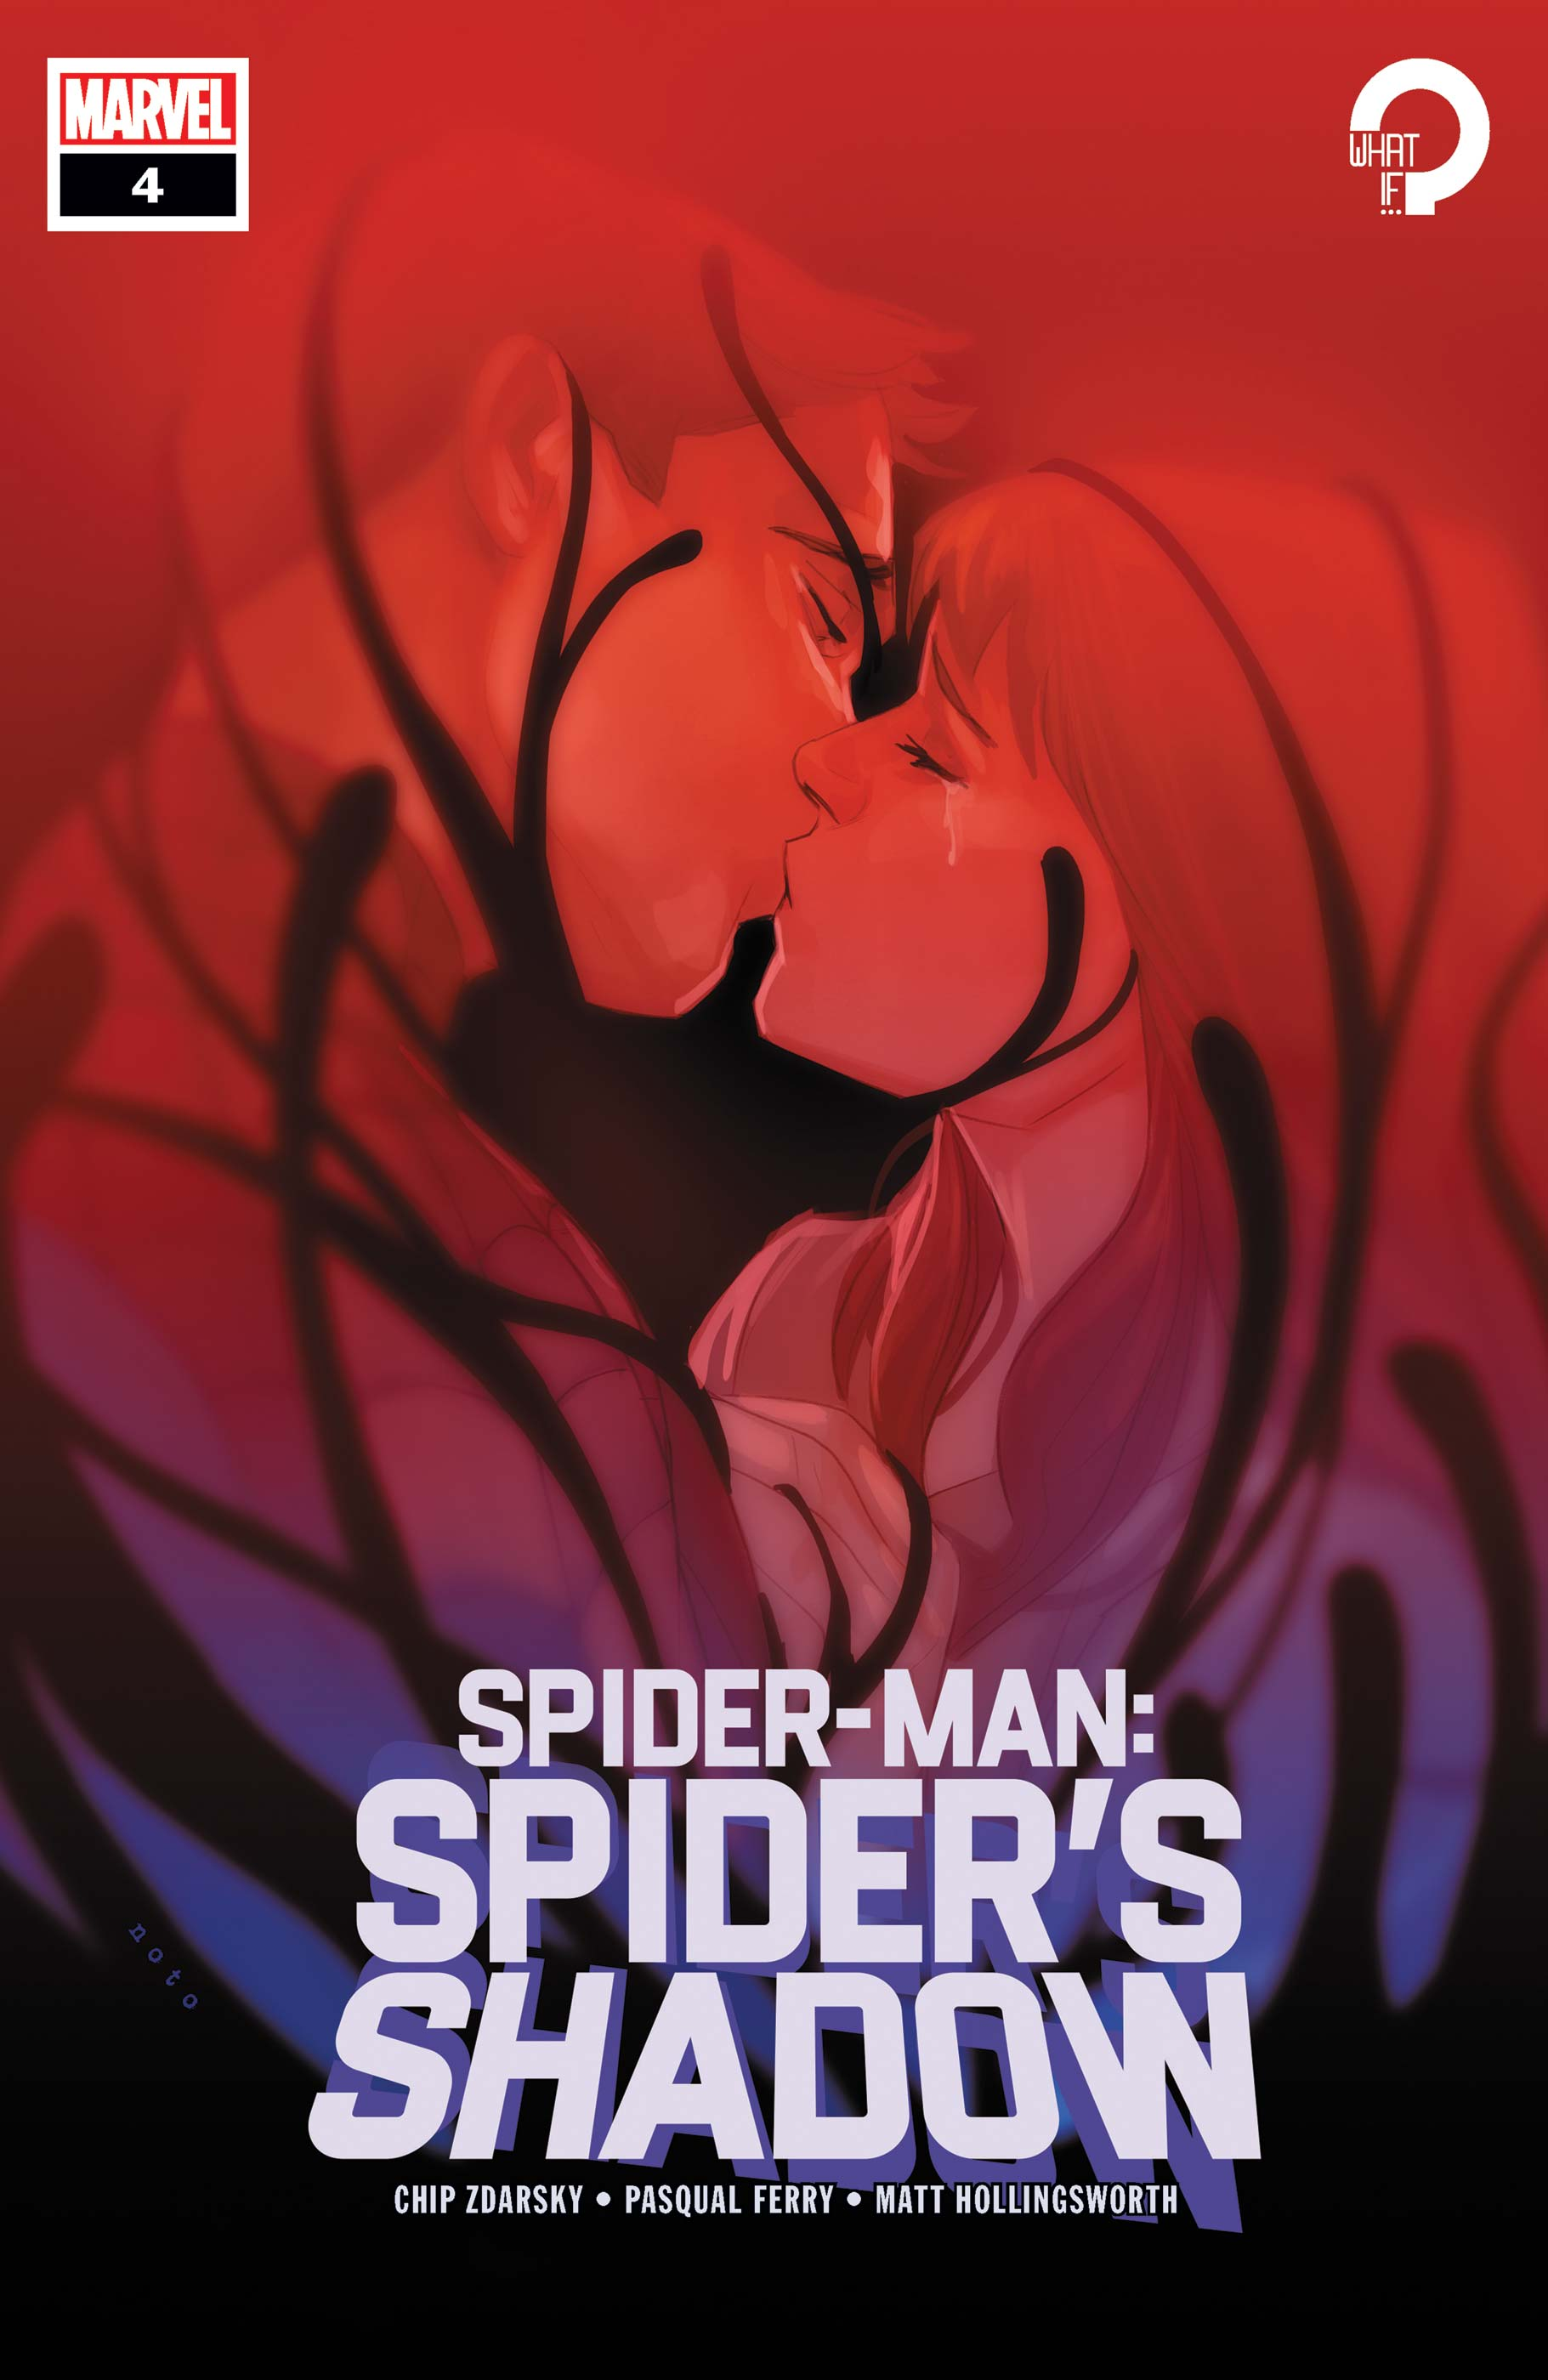 SPIDER-MAN SPIDERS SHADOW #4 (OF 5)